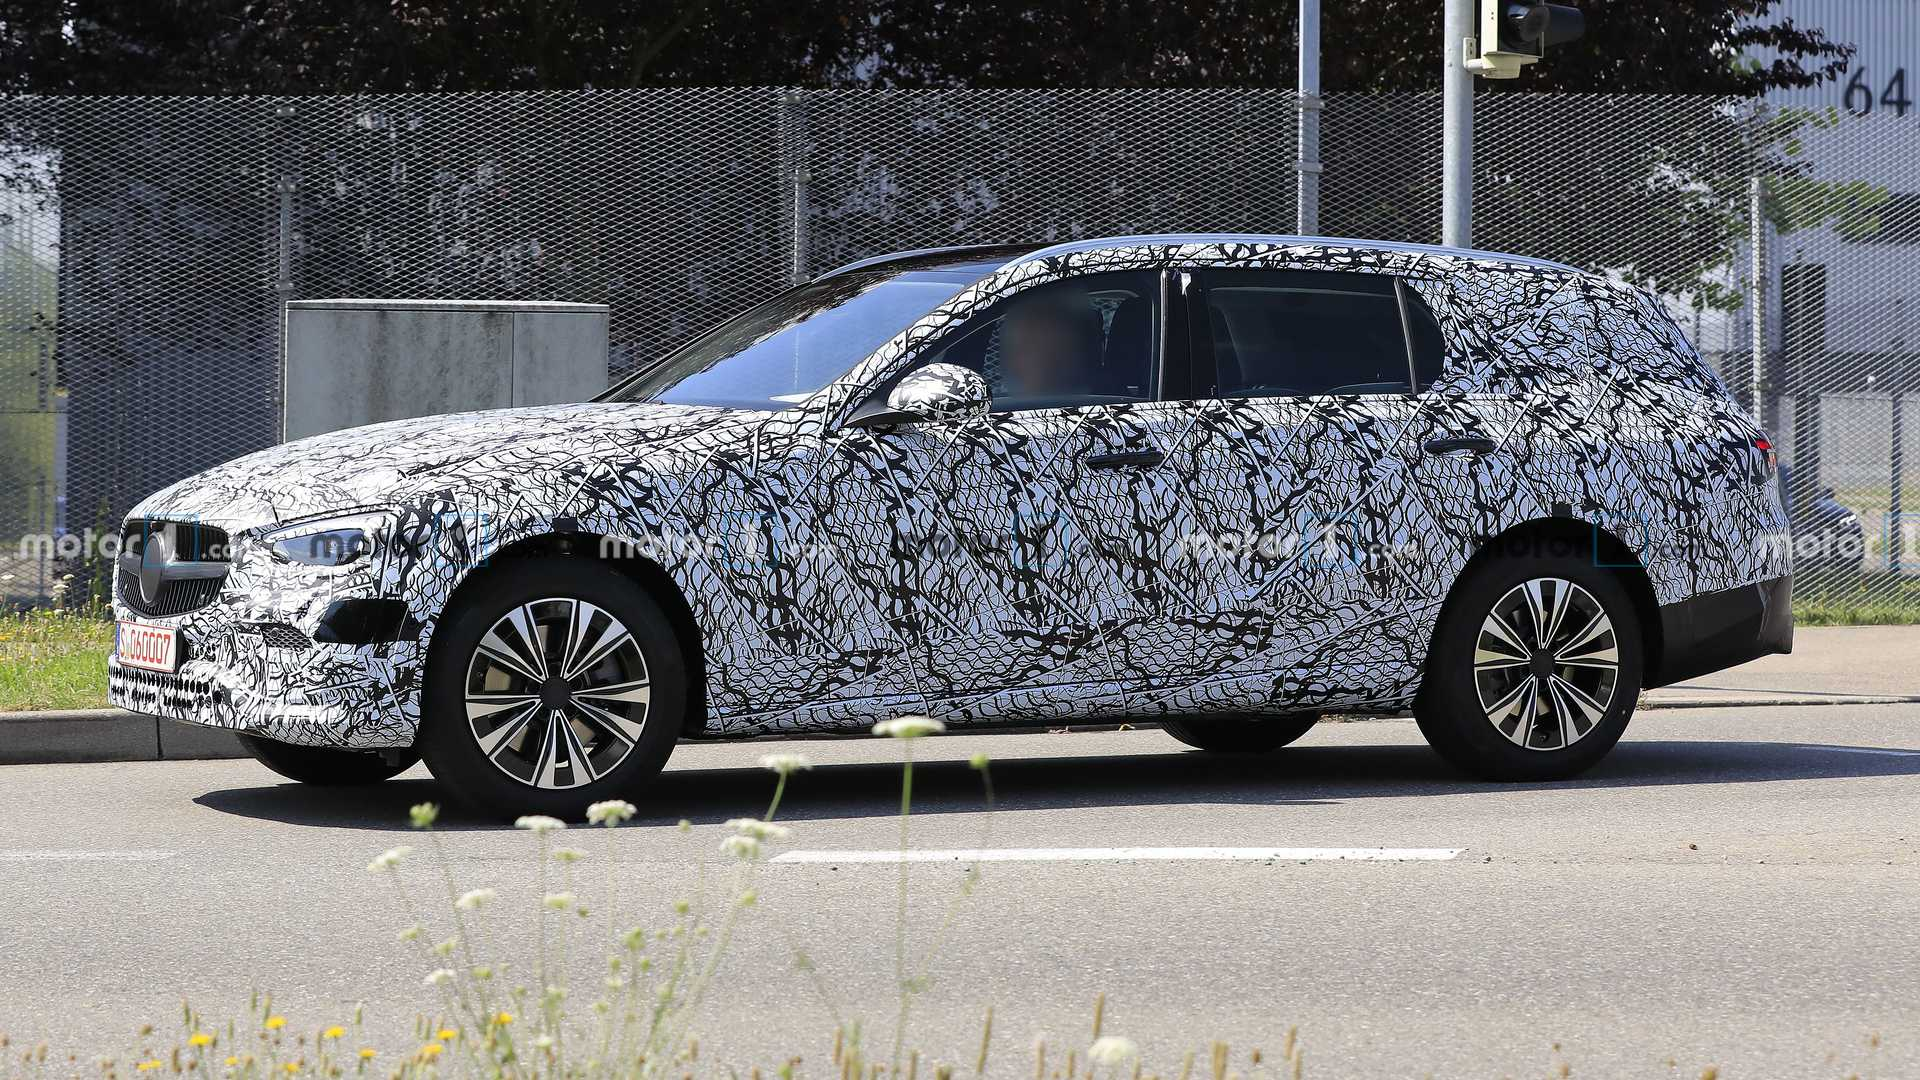 2021-mercedes-c-class-estate-spy-photo-o